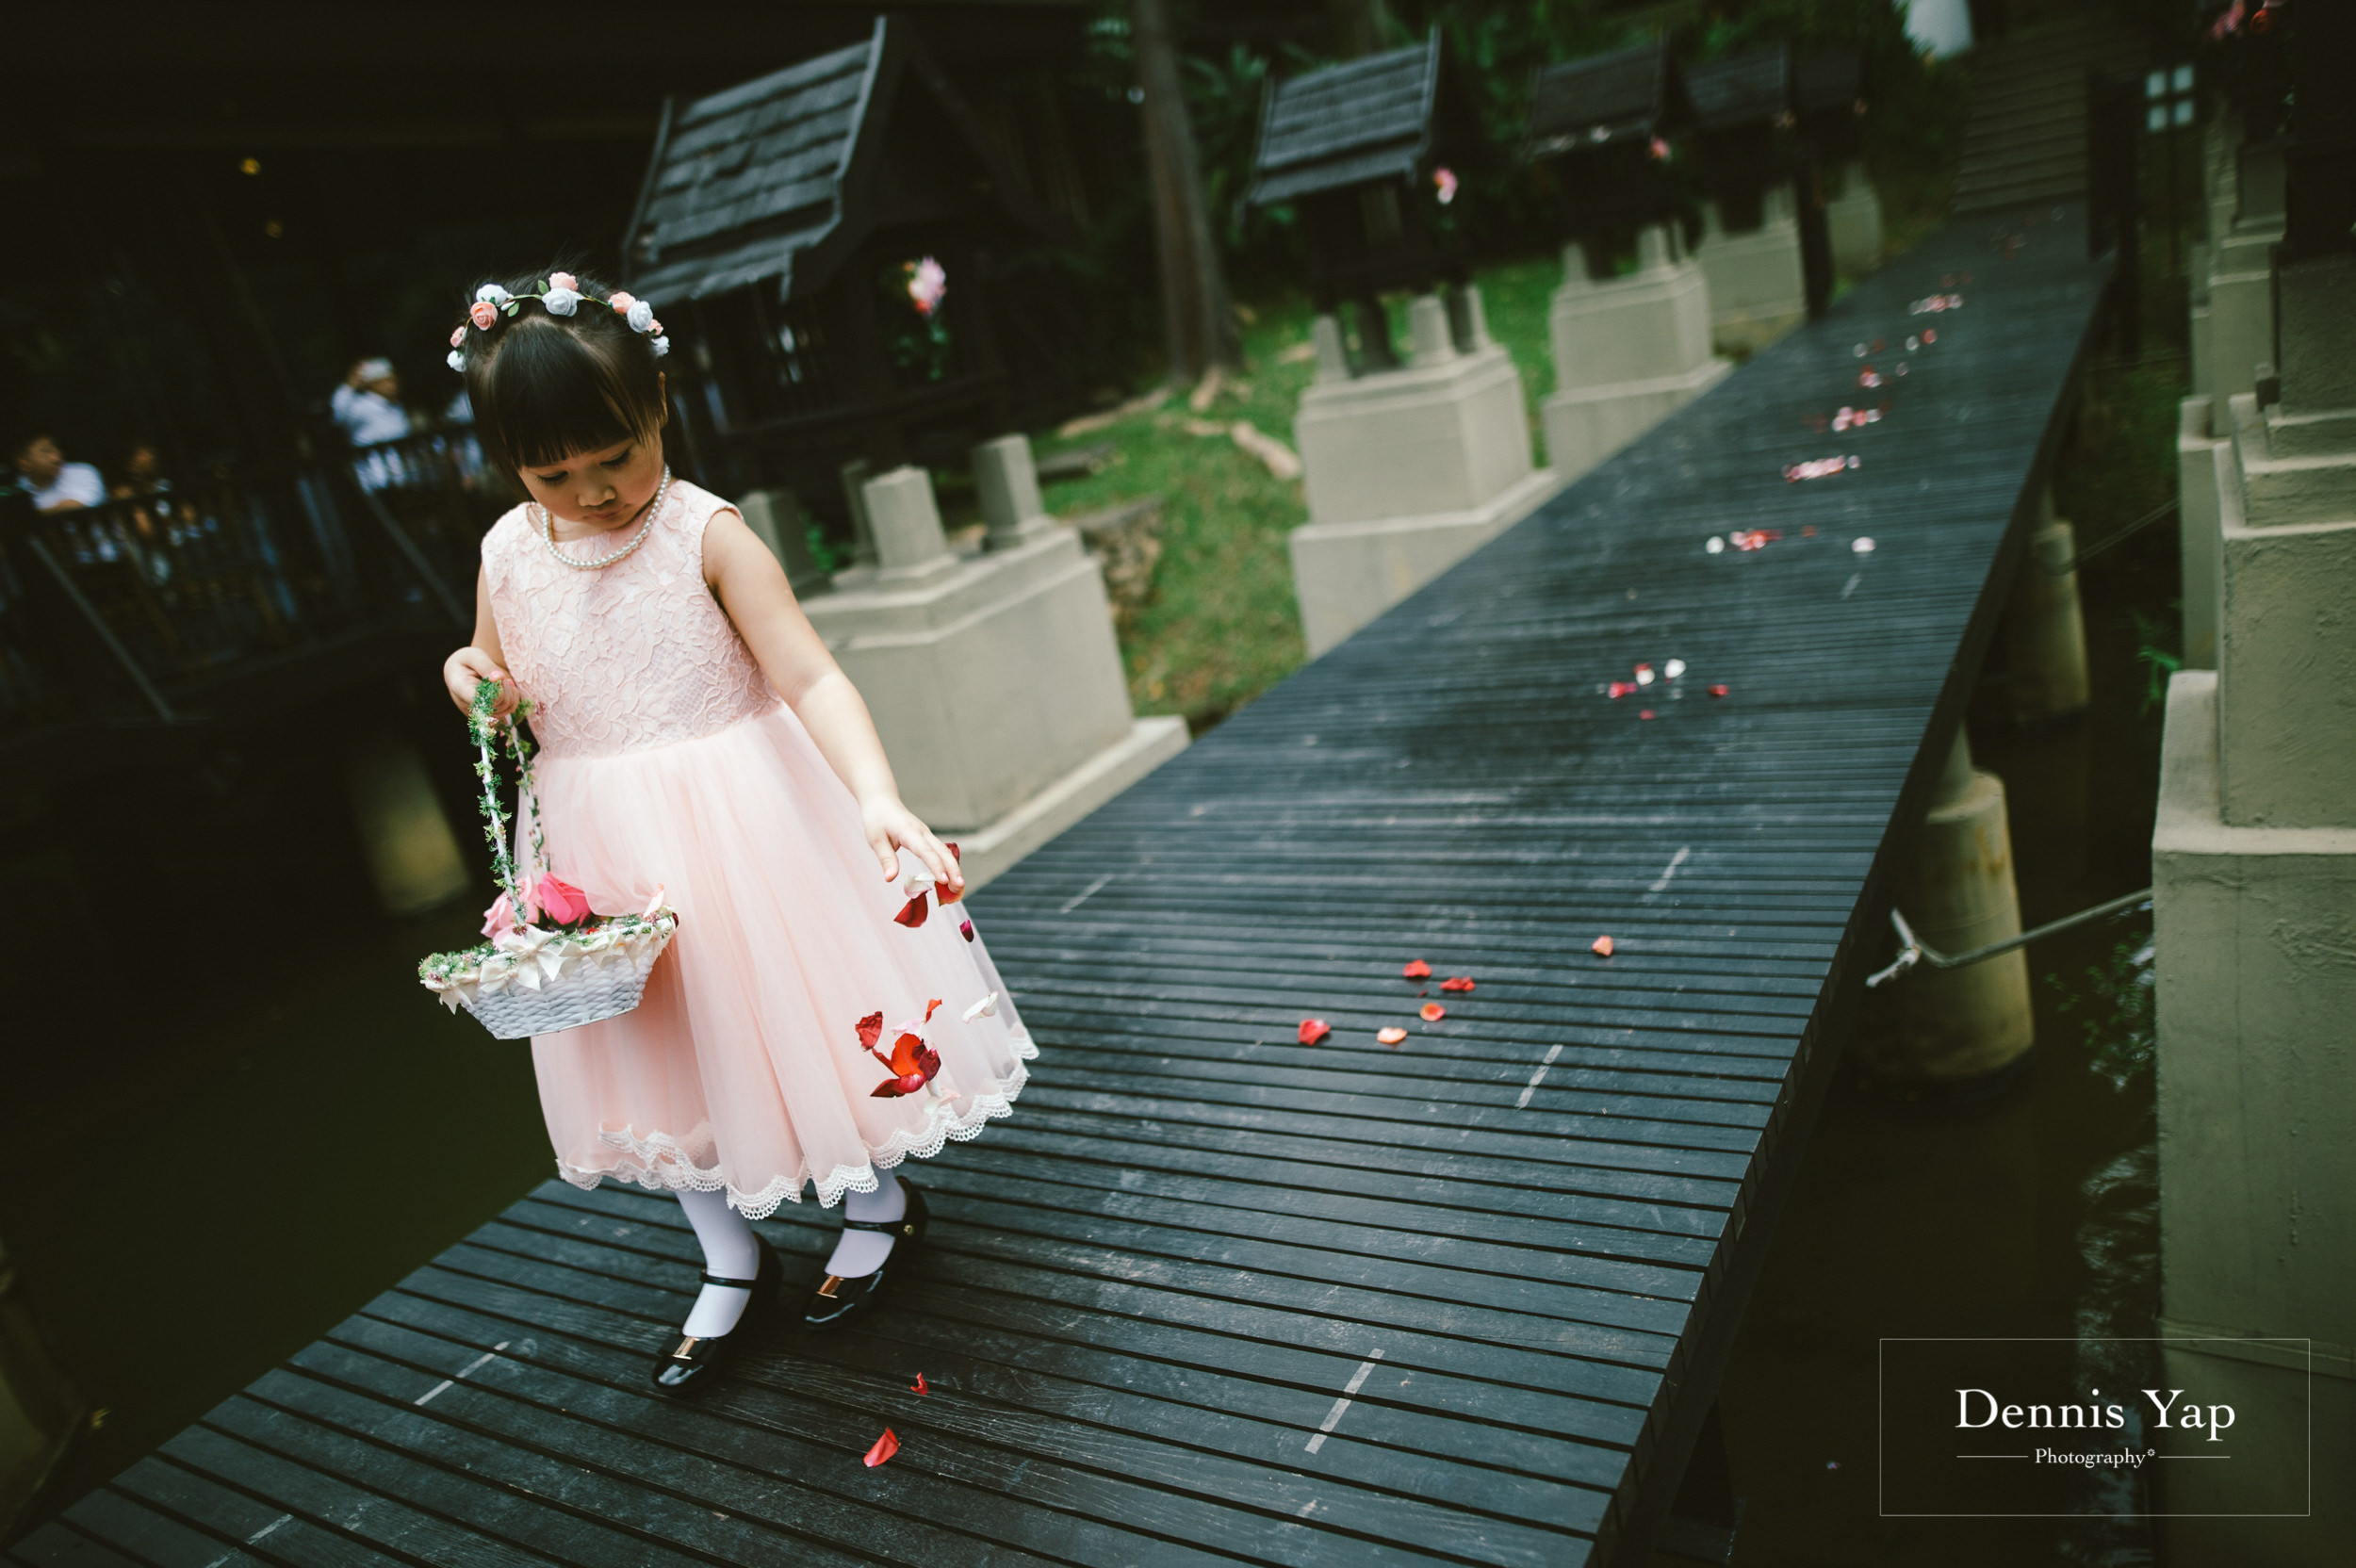 kit weng melissa gita bayu garden wedding dennis yap photography-7.jpg